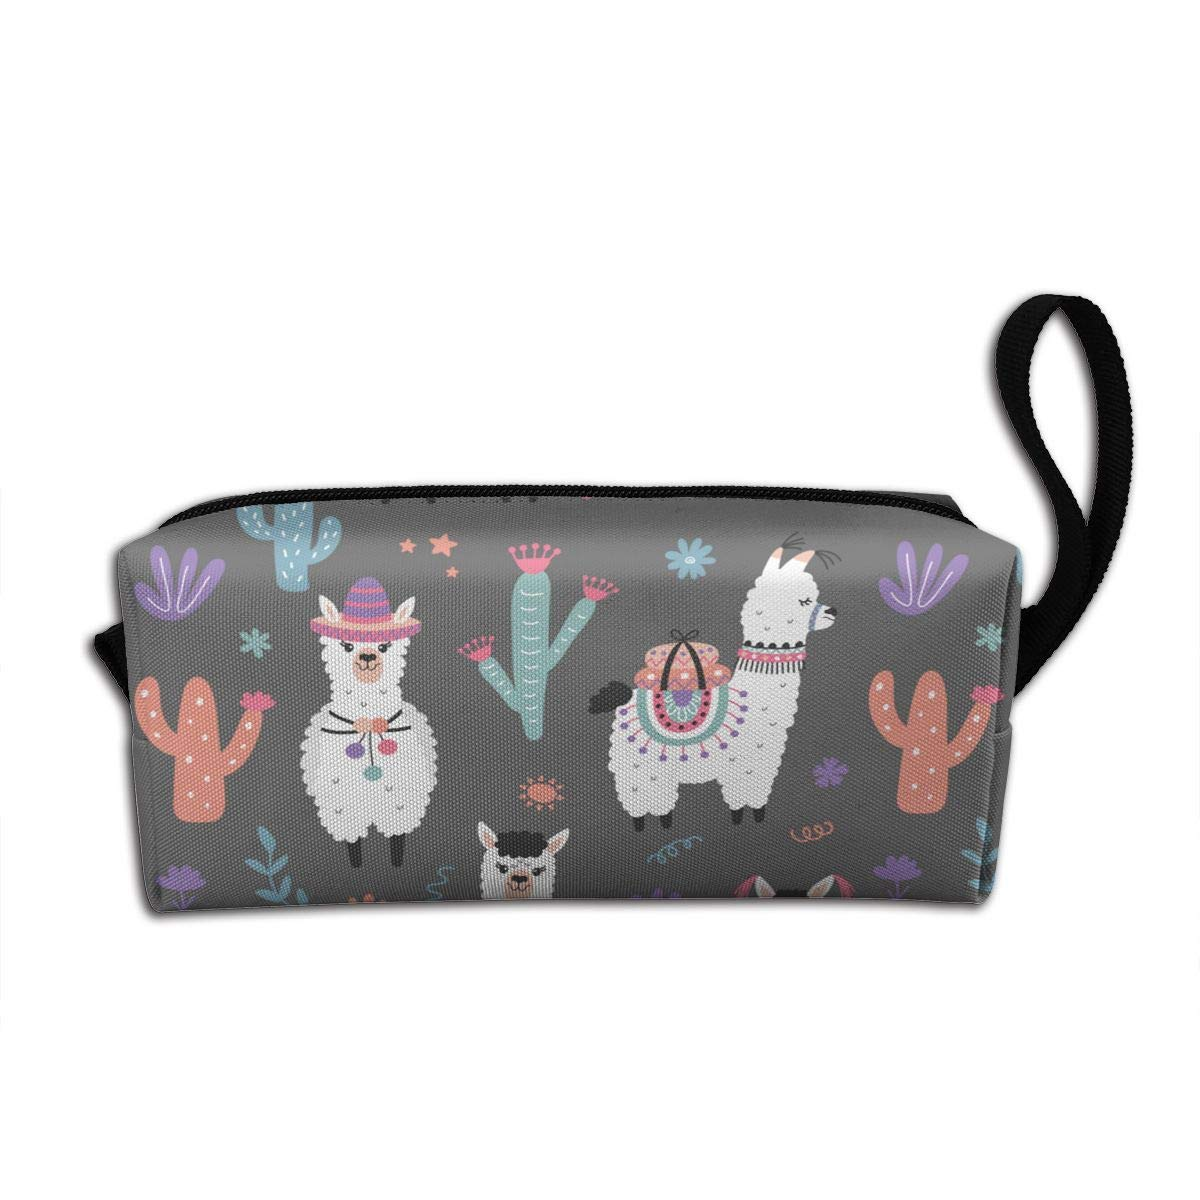 Cartoon Llama Alpaca Seamless Pattern Makeup Bag Adorable Travel Cosmetic Pouch Toiletry Organizer Case Gift for Women